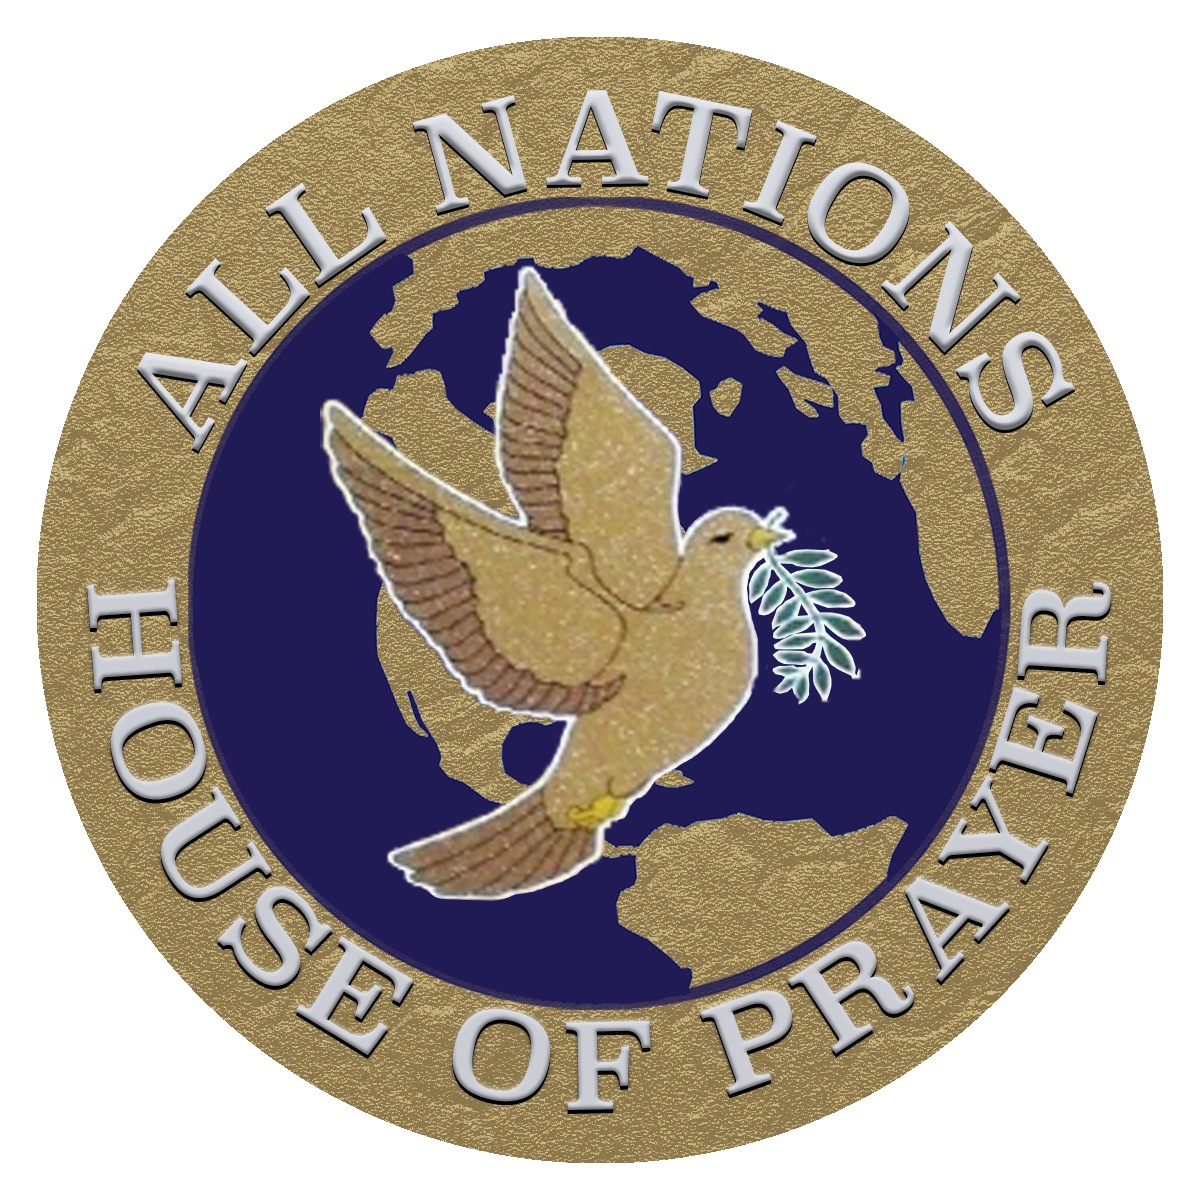 All Nations House Of Prayer of Hopkinsville, KY